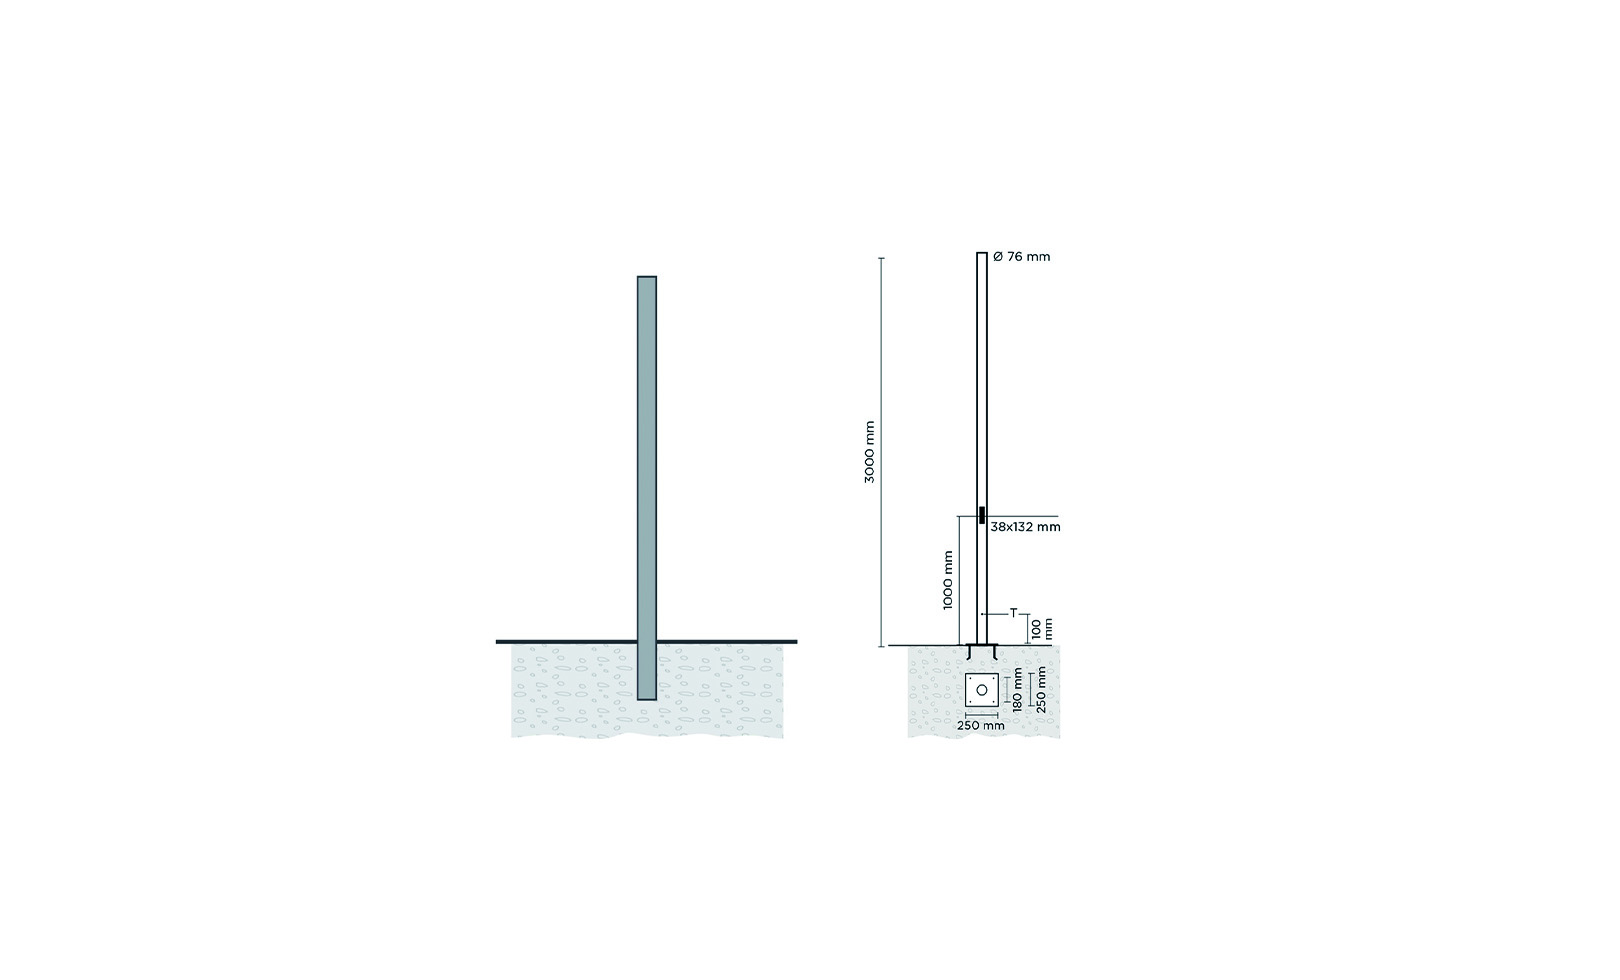 809904 CYLINDRICAL POLE 3 METERS  WITH BASE-PLATE 1